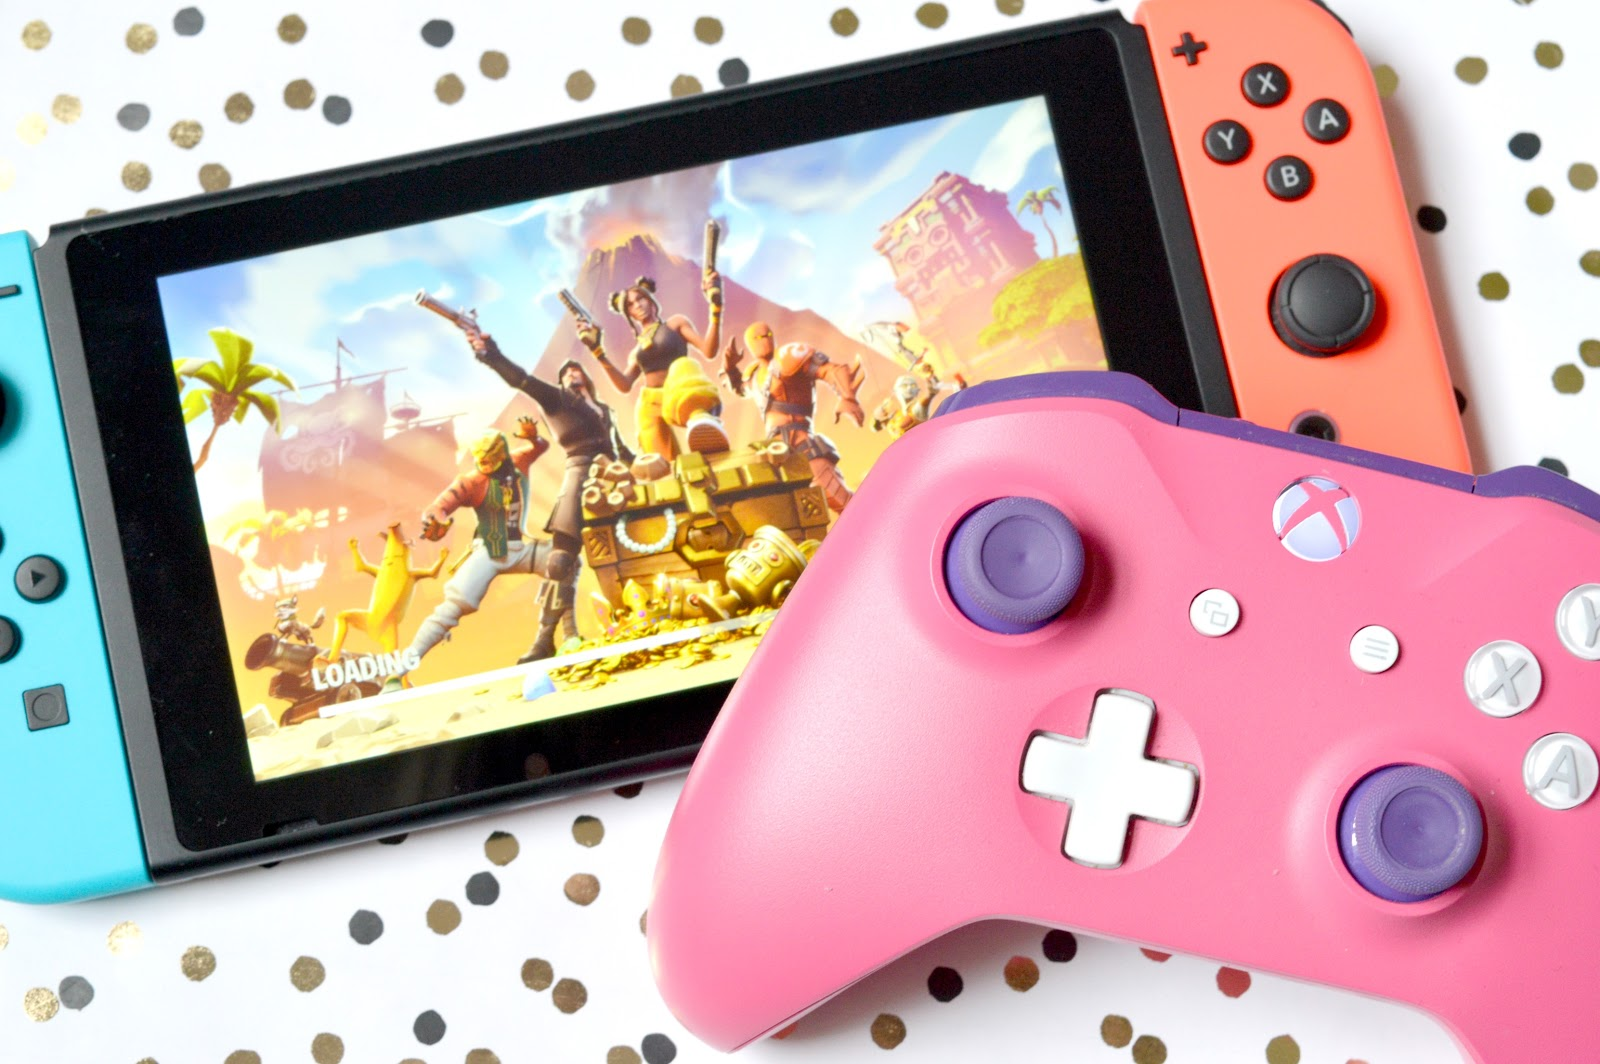 This is a picture of a Nintendo Switch Console with blue and red Joy-Cons and Fortnite loading on the screen. Alongside it is a pink and purple Xbox One controller.